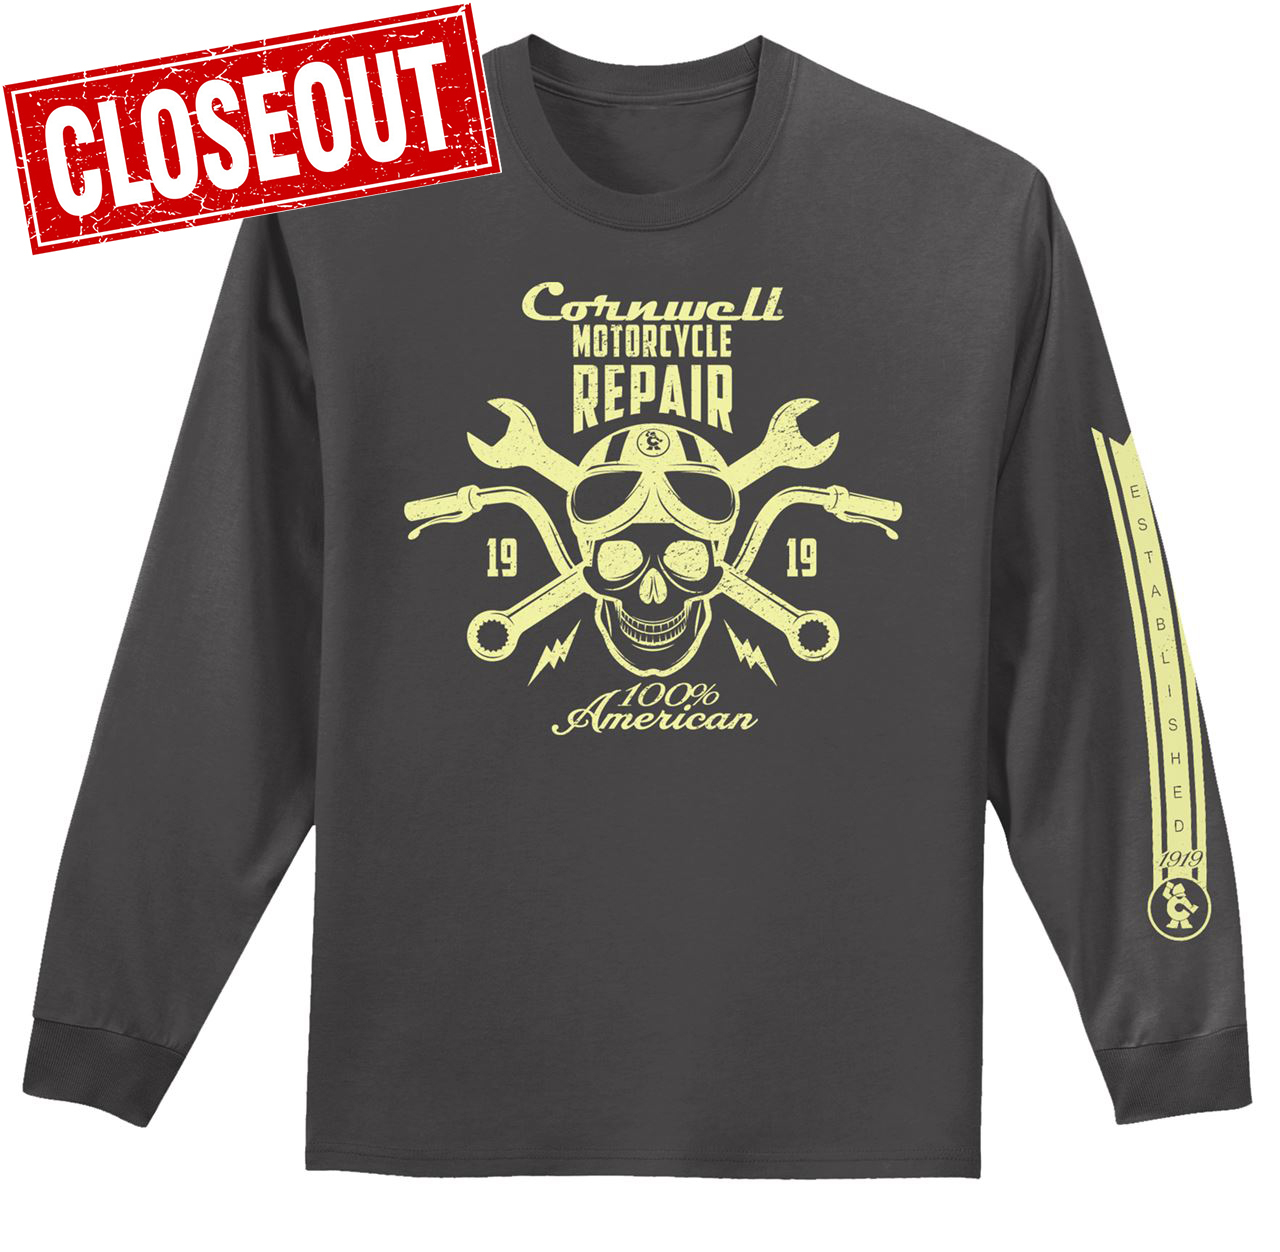 Picture of Motorcycle Repair Long Sleeve T-Shirt (CGLSMRT)